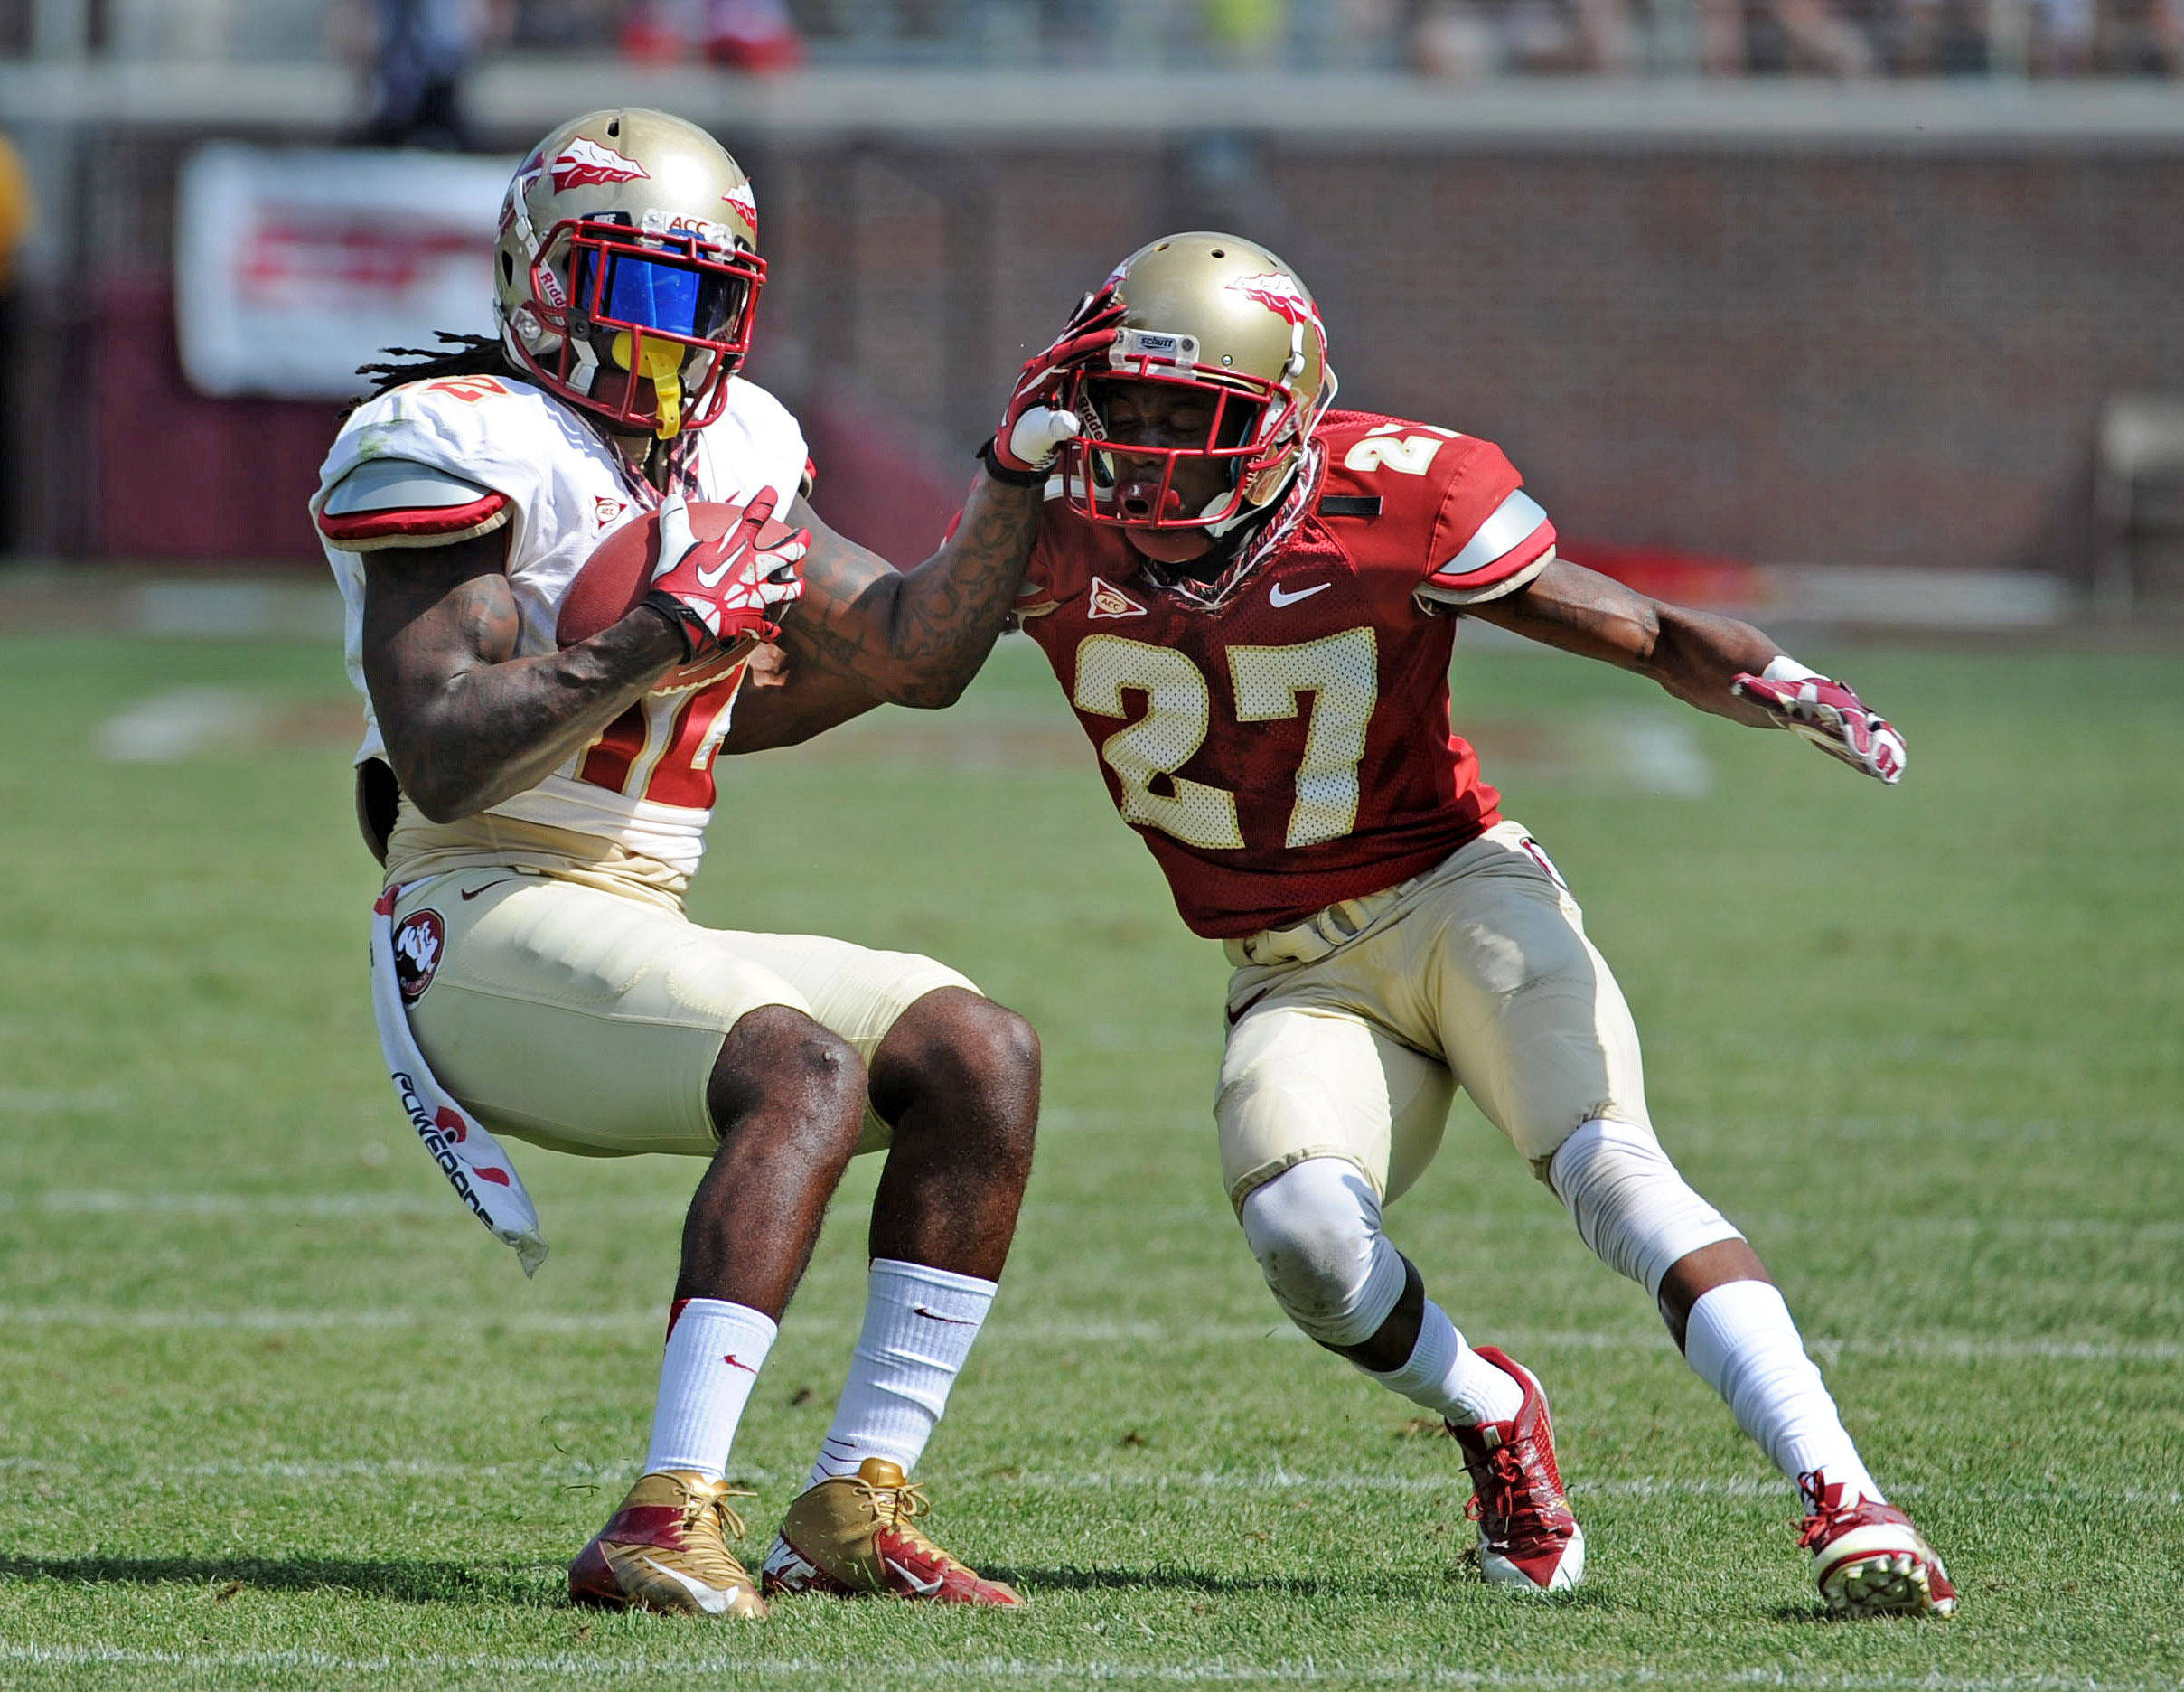 Garnet vs. Gold Spring Game#$%^April 12, 2014#$%^(Melina Vastola-USA TODAY Sports)